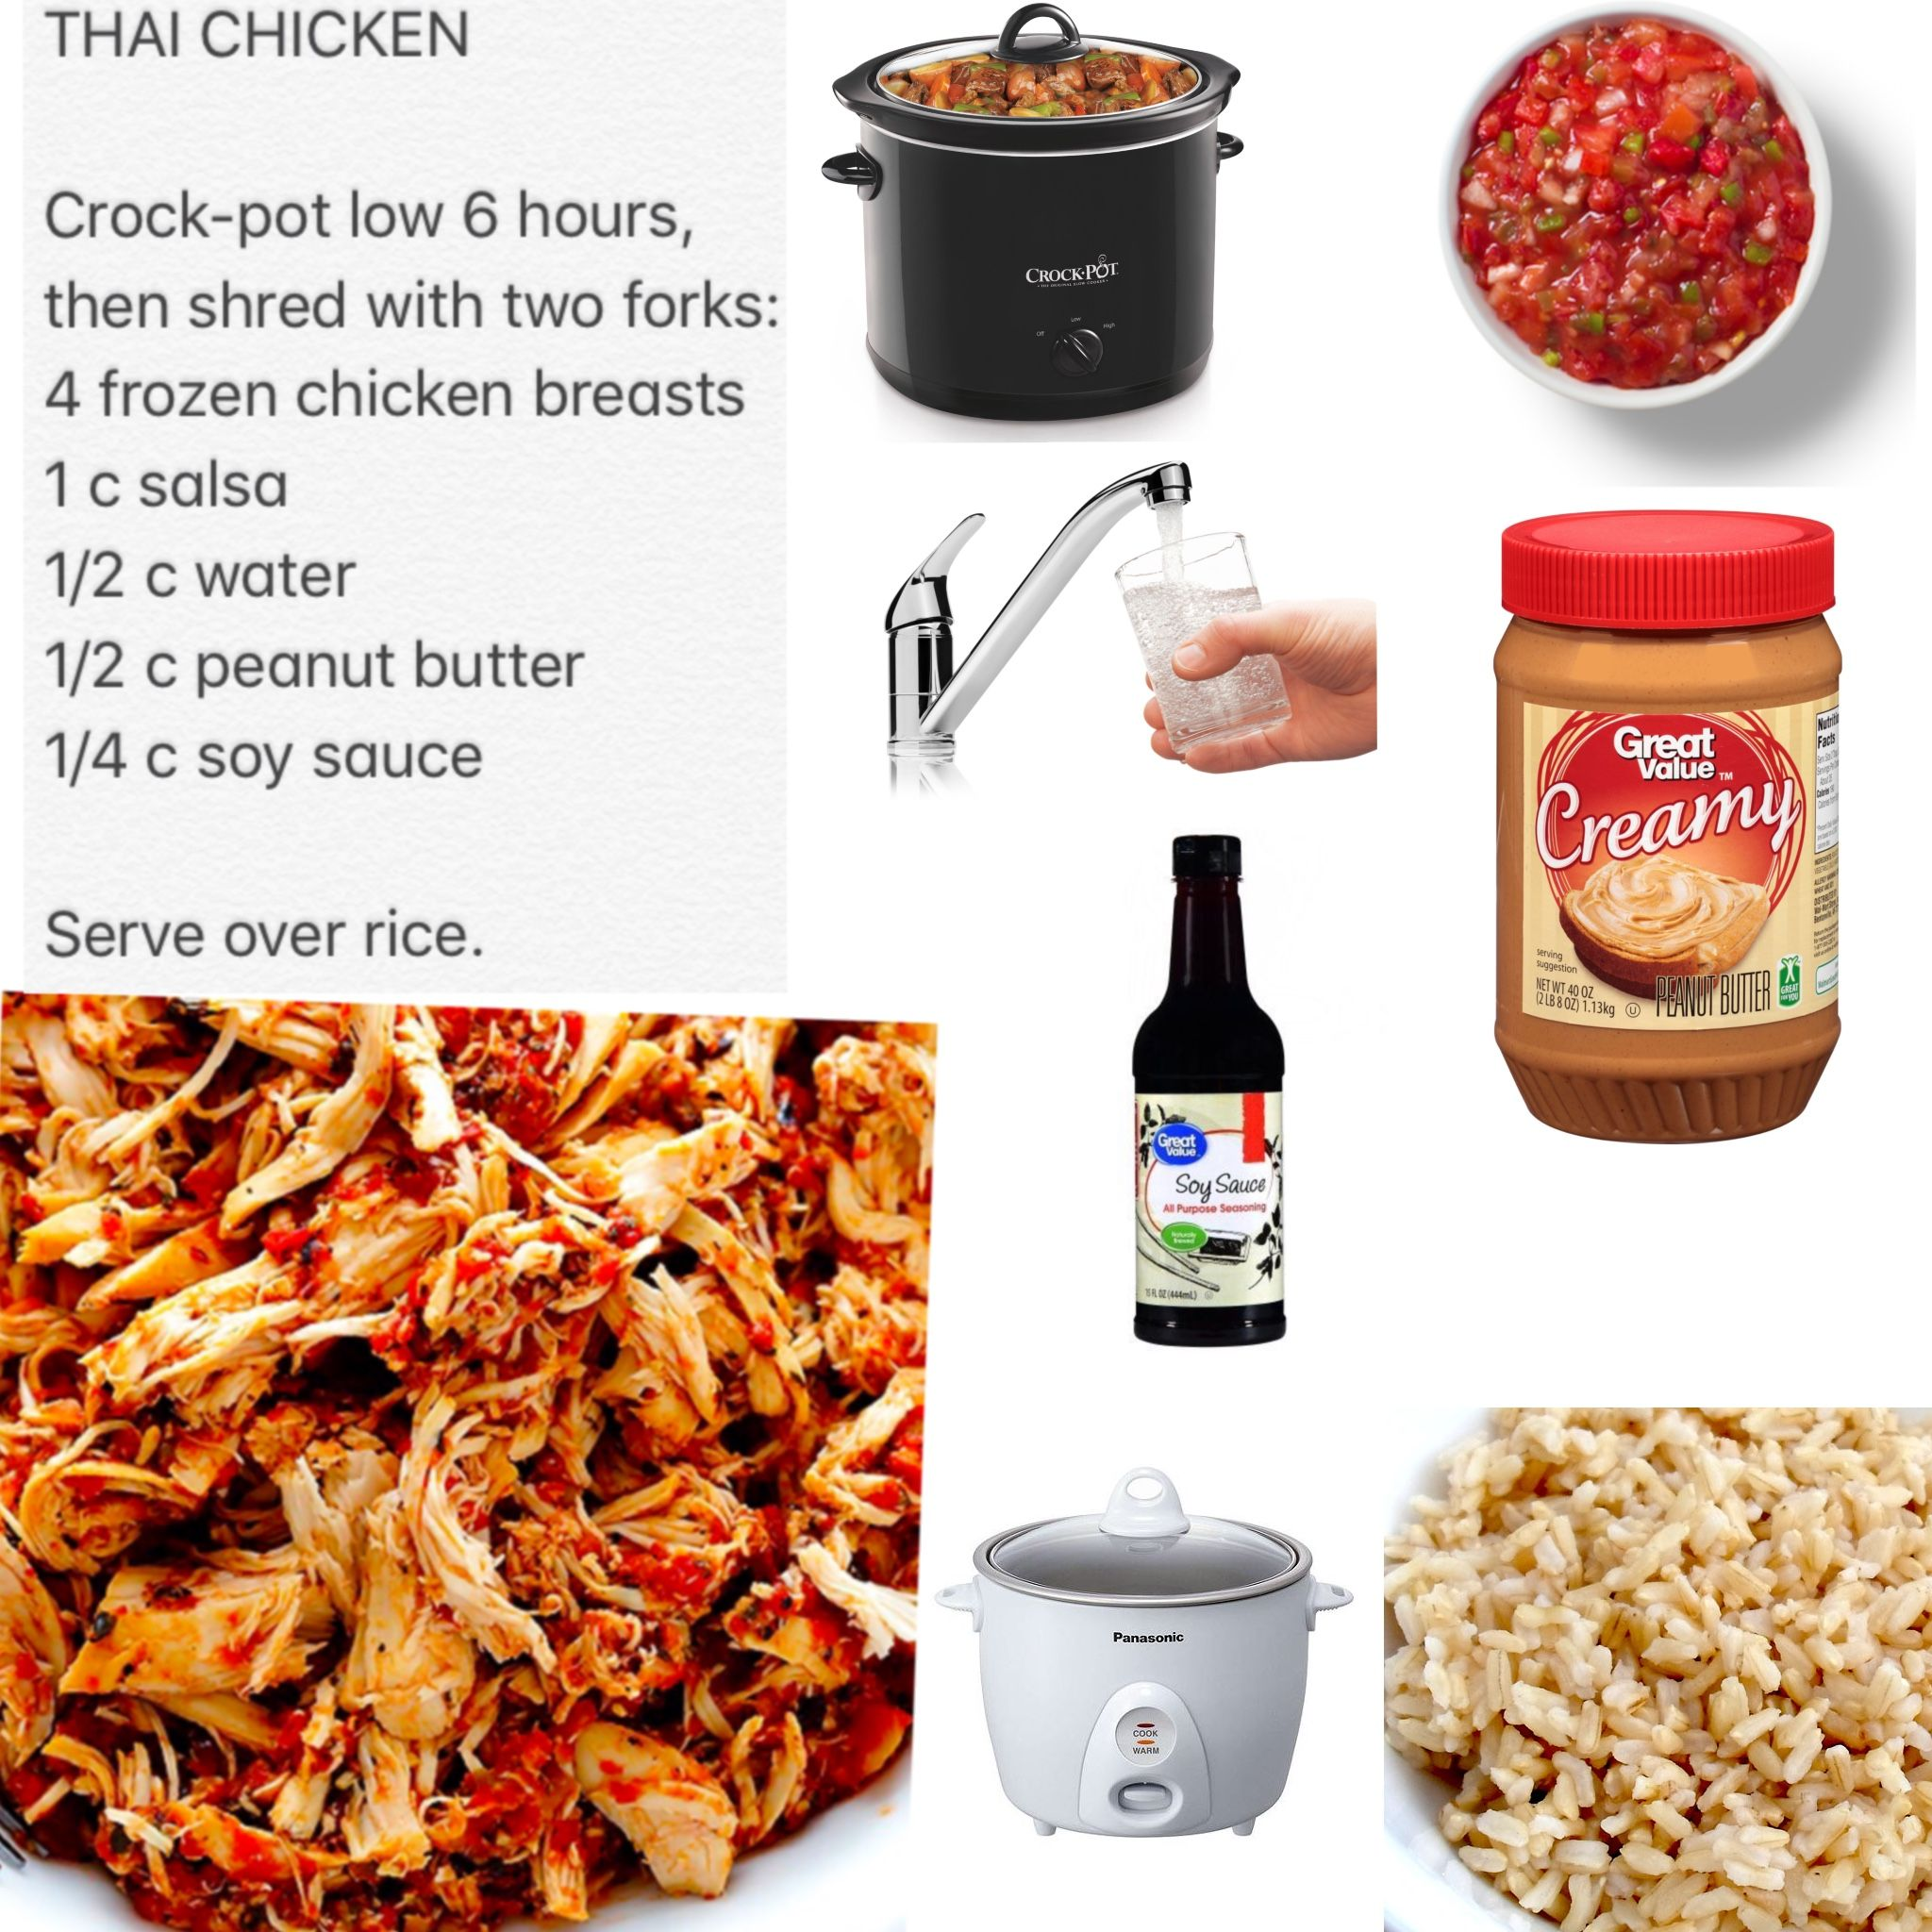 Thai chicken: Crock-pot low 6 hours, then shred with two forks: 4 ...